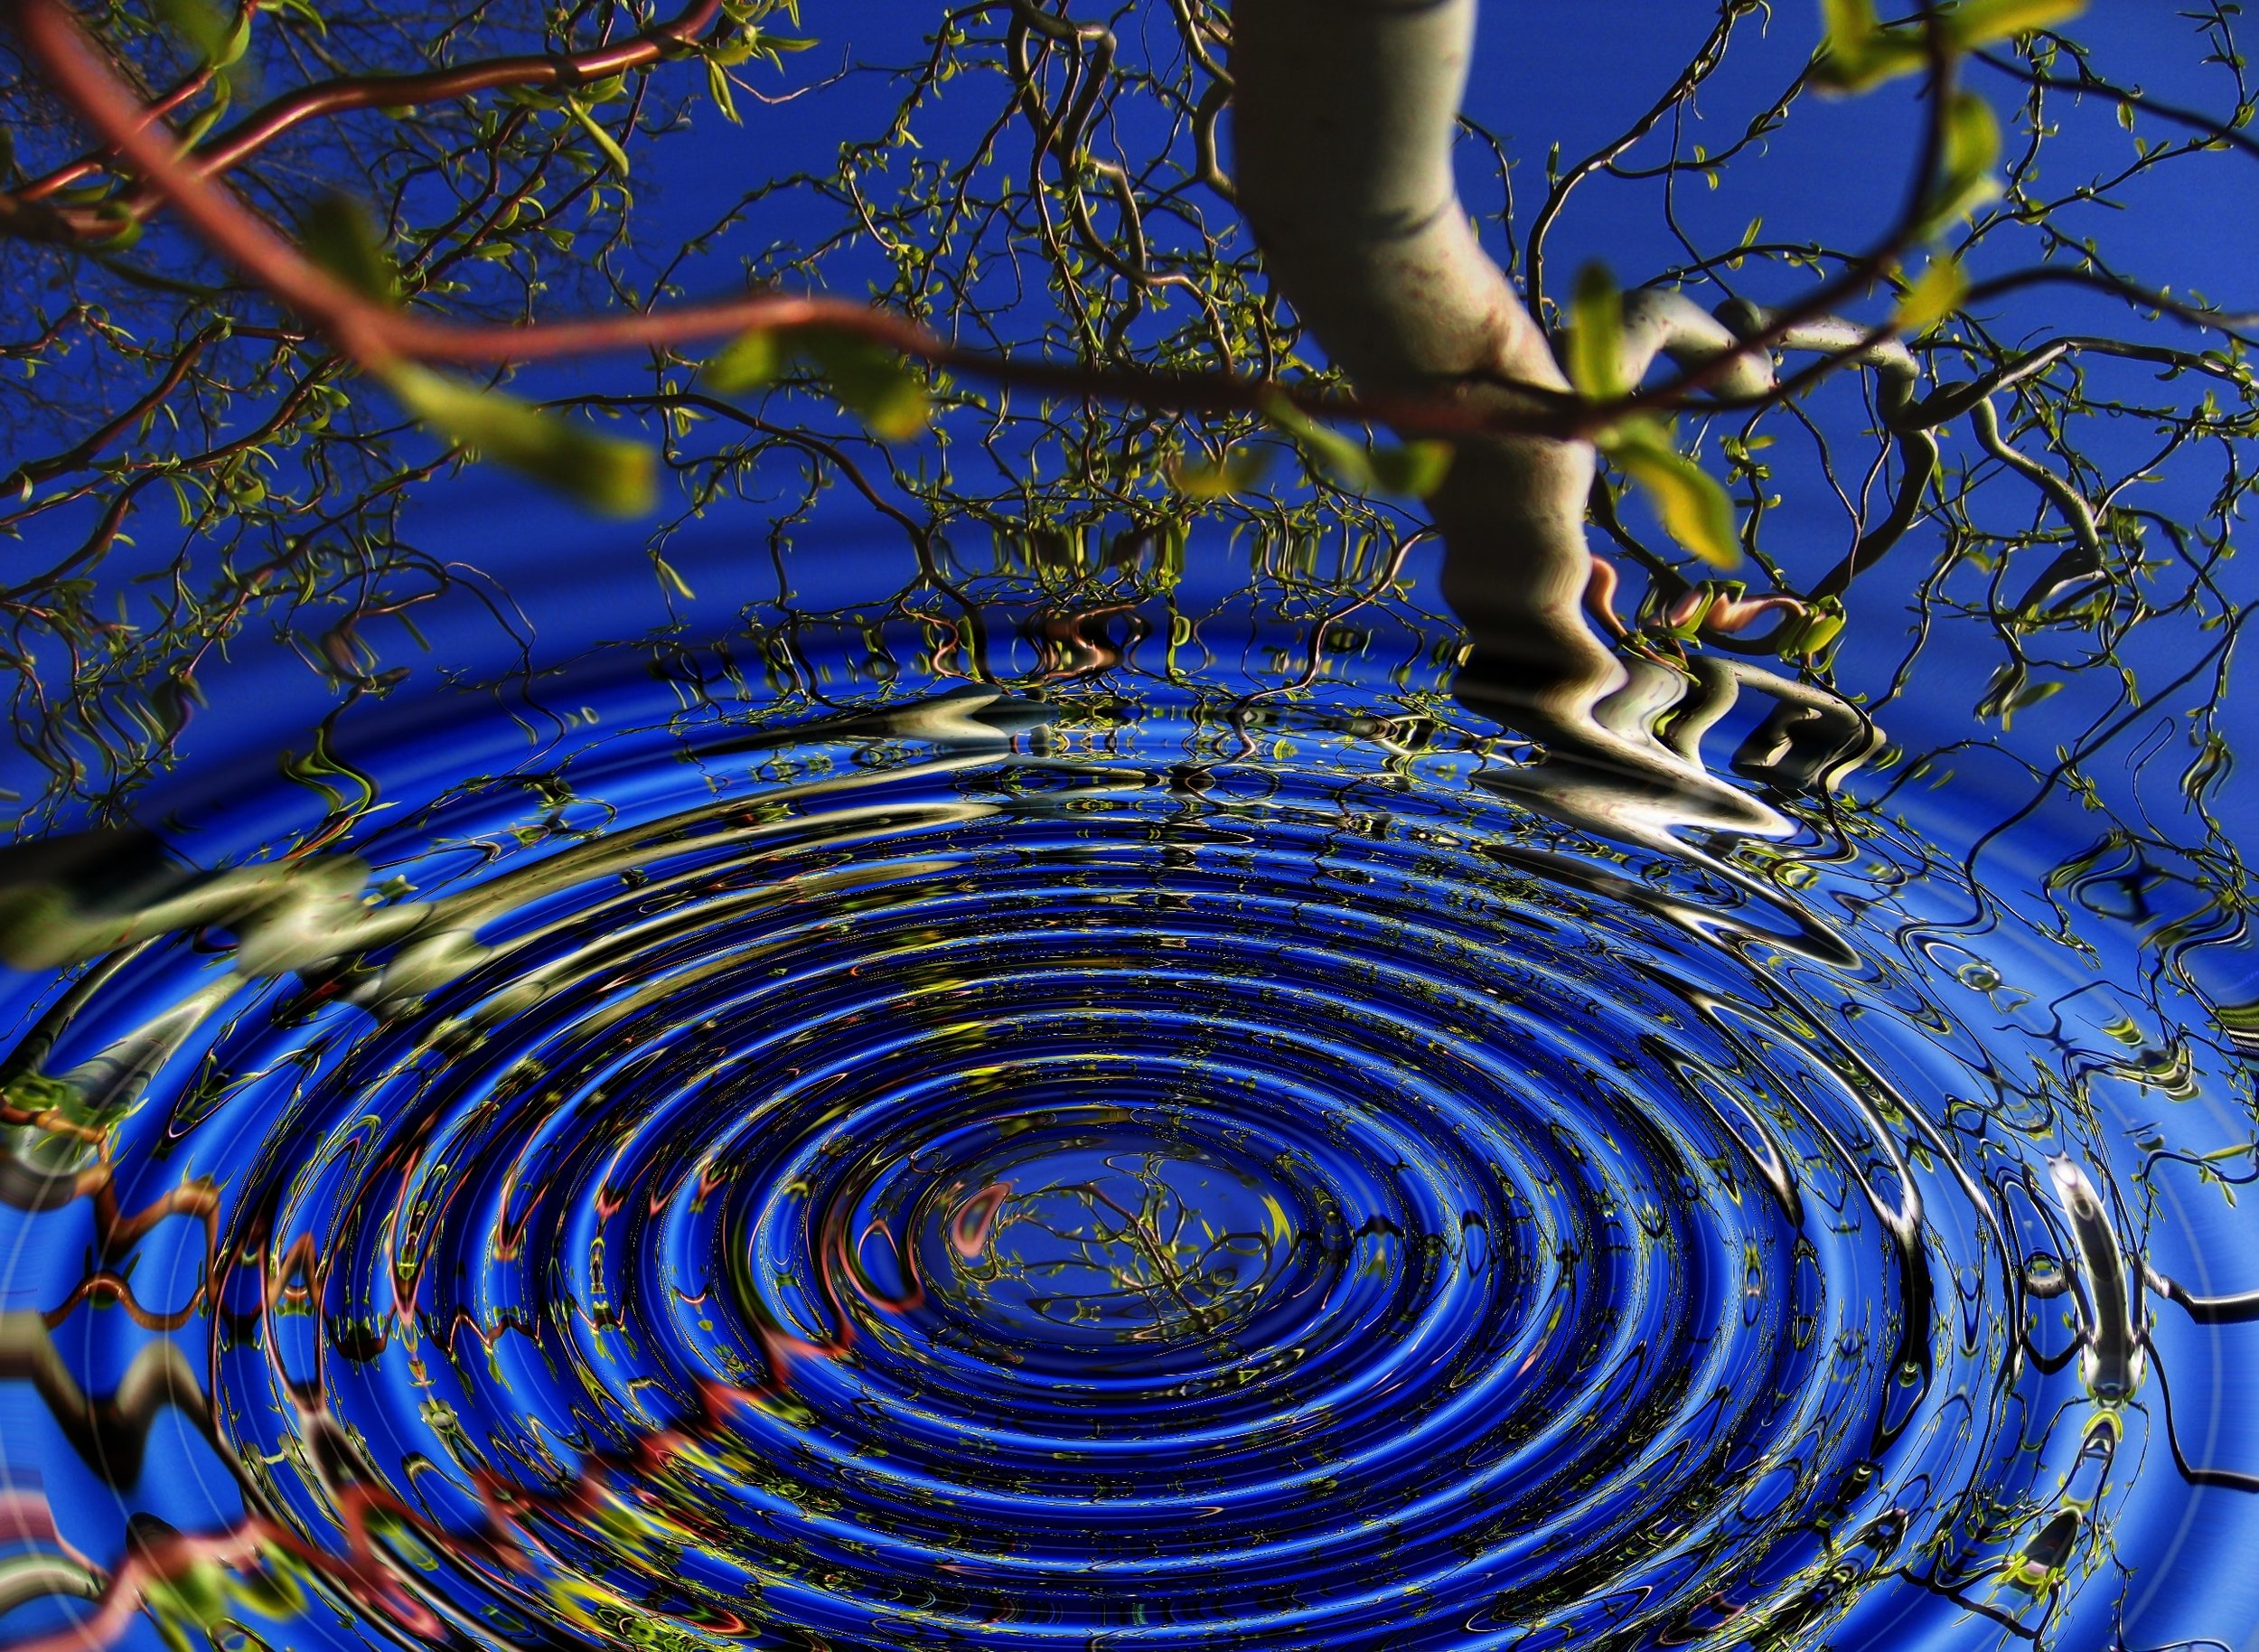 tree-water-branch-drop-light-abstract-779896-pxhere.com.jpg